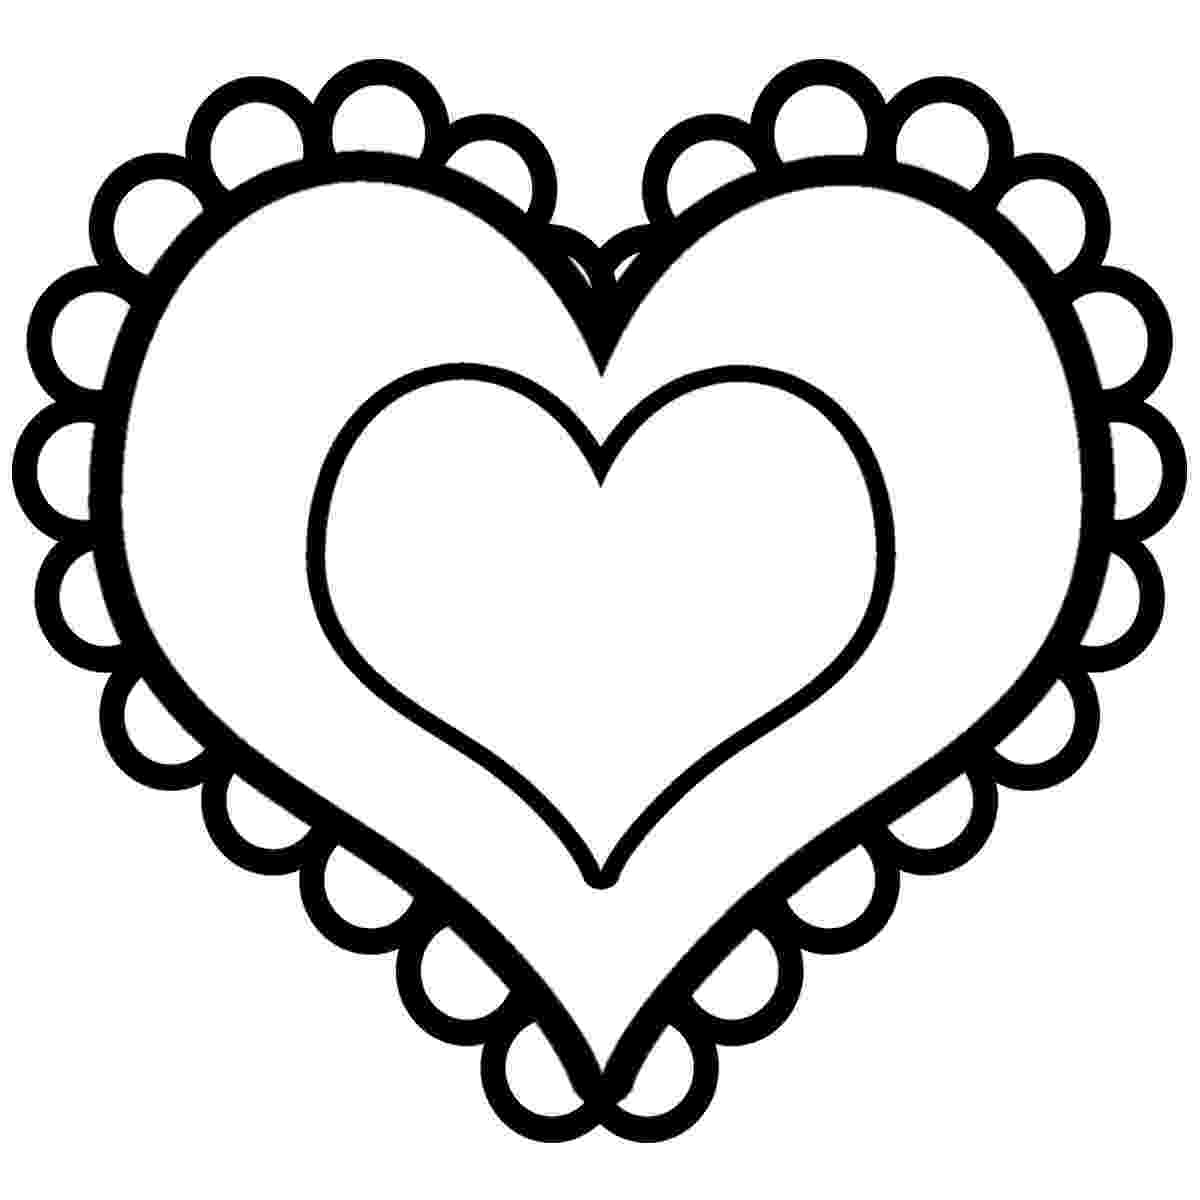 printable picture of a heart free printable heart coloring pages for kids heart of picture printable a